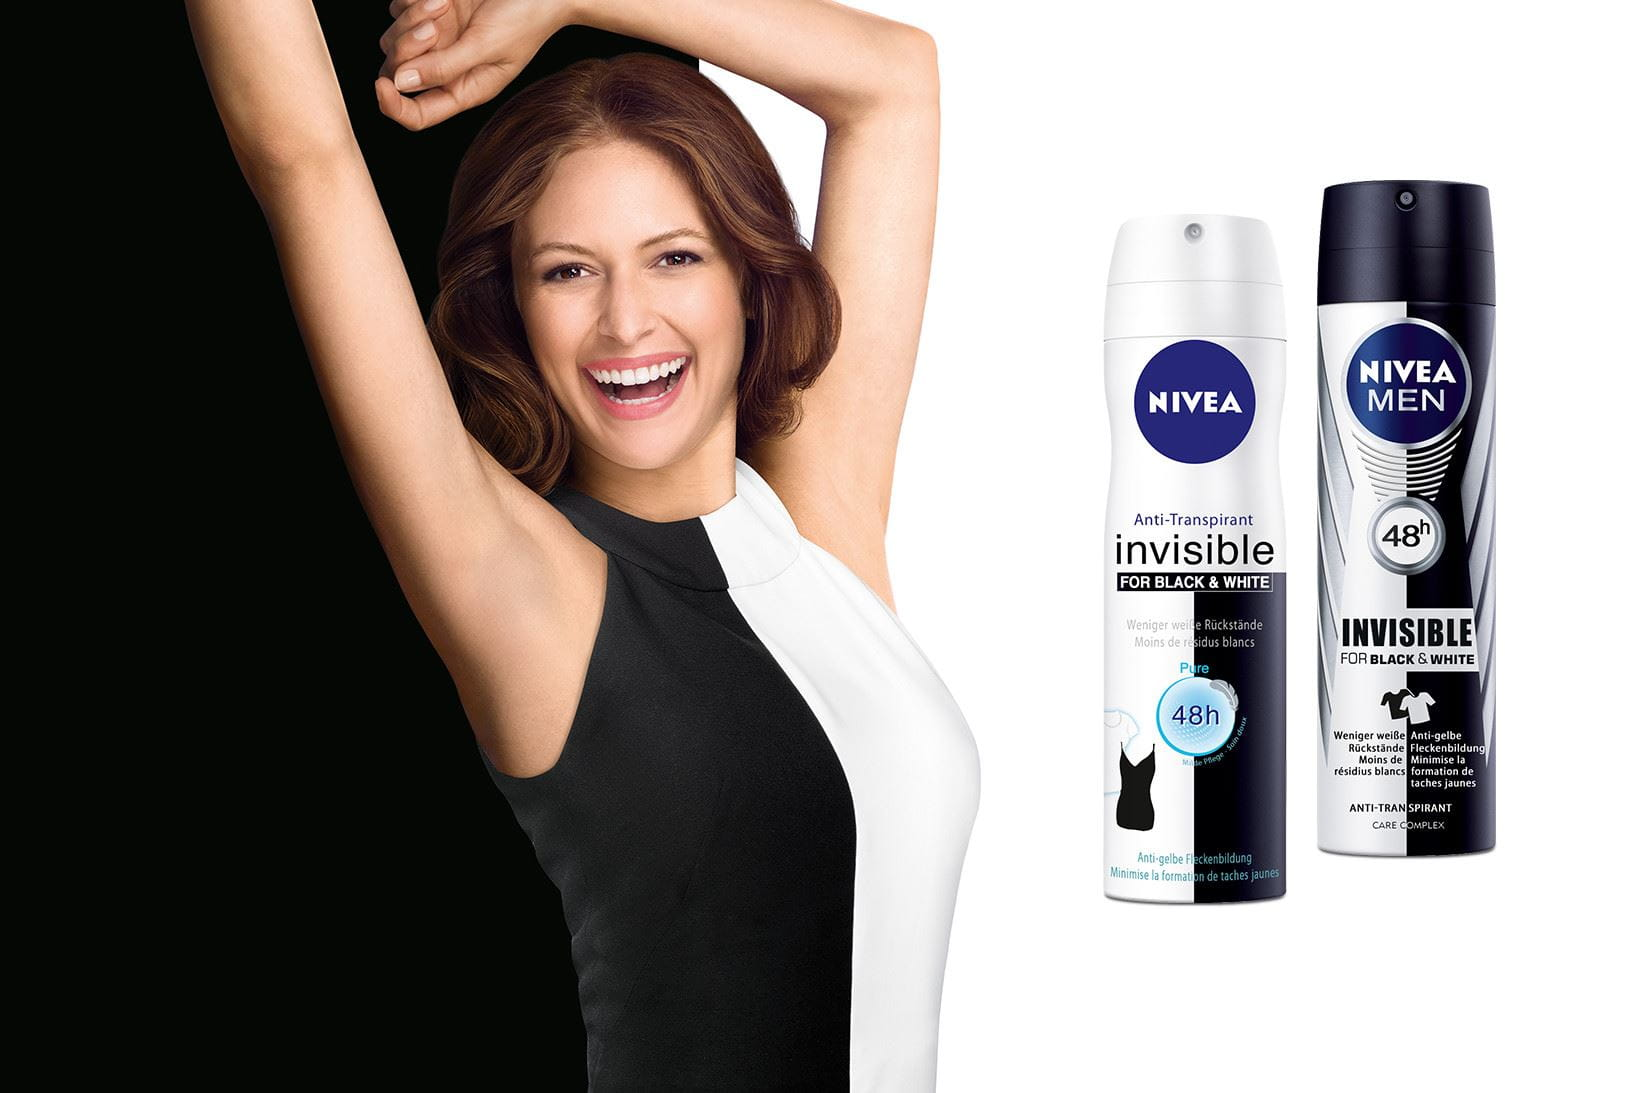 Innovation NIVEA Déodorant Invisible for Black & White